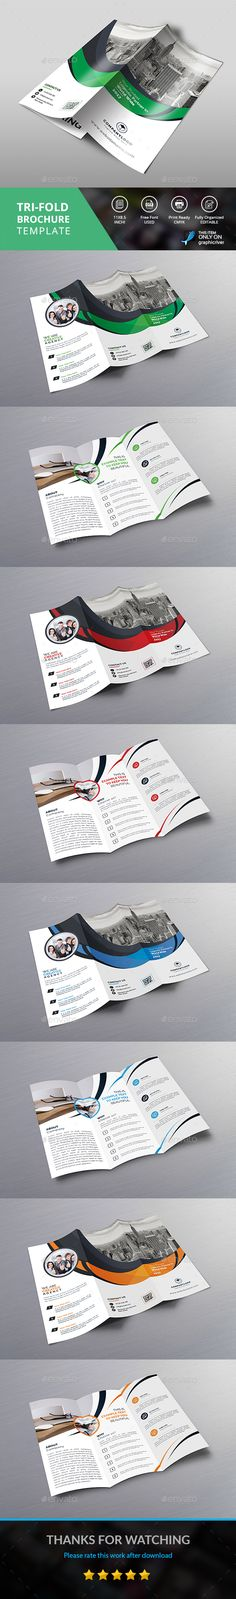 Fitness - Gym Bifold Brochure Fitness, Brochure template and - Fitness Brochure Template